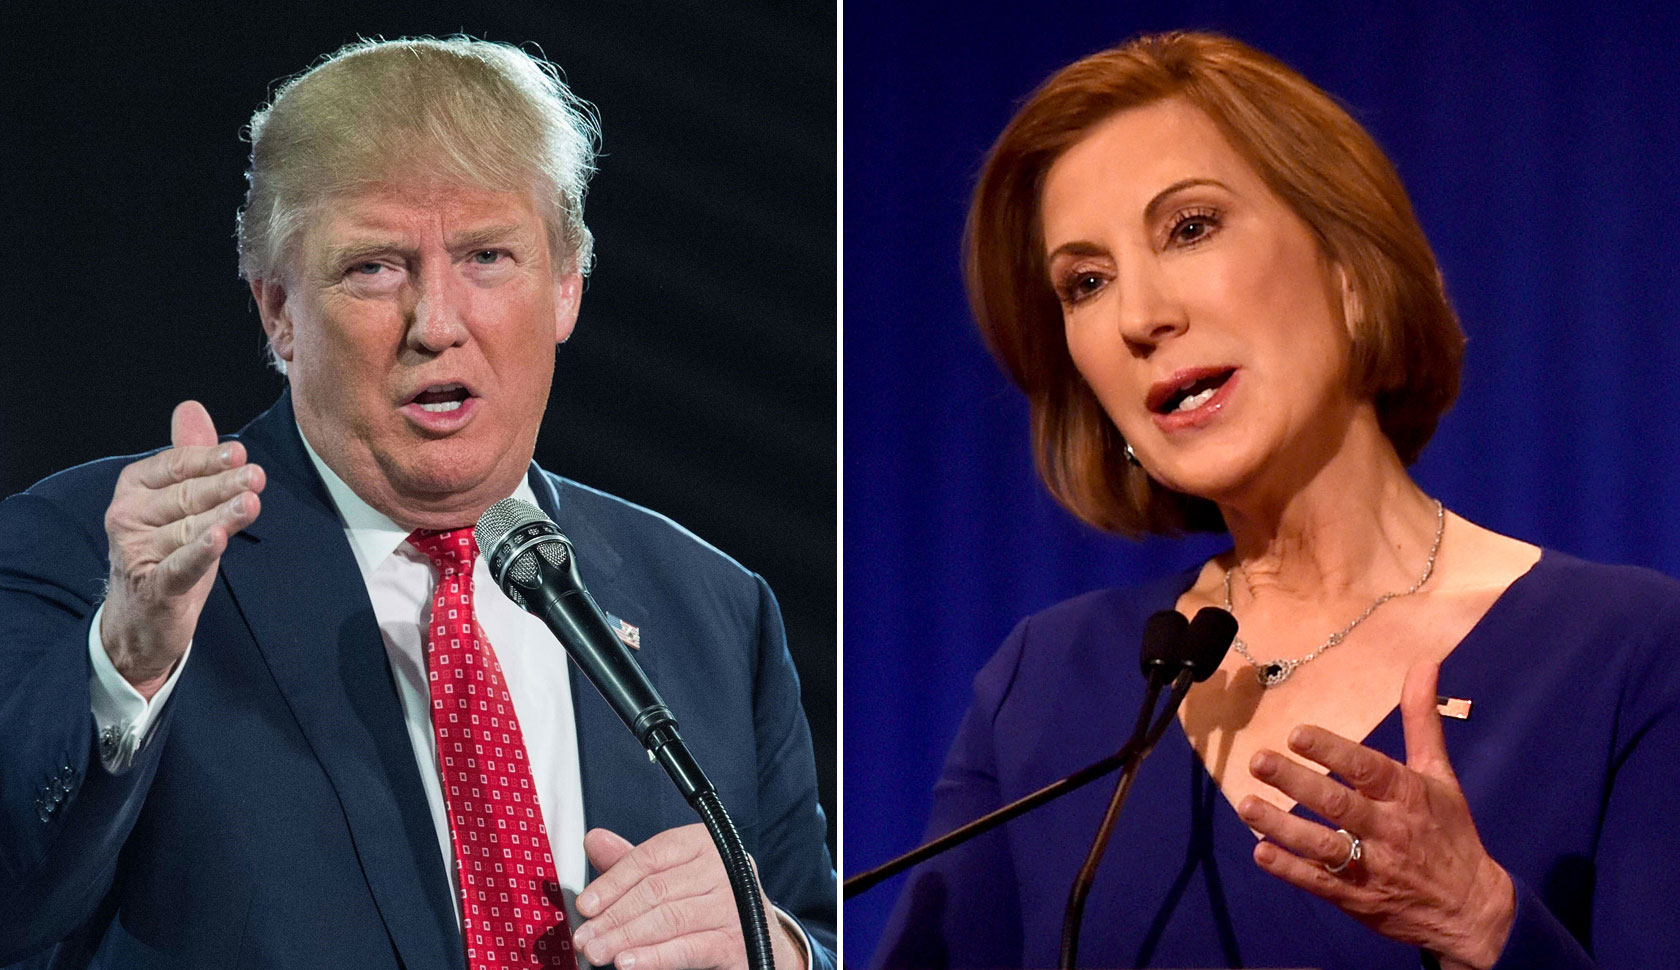 Carly Fiorina Donald Trump Split 2016